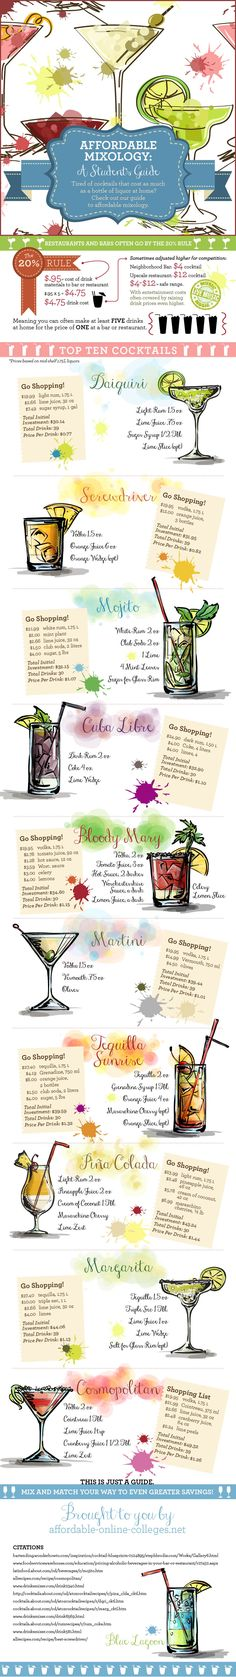 Affordable Mixology: A Student's Guide [INFOGRAPHIC] #student #mixology